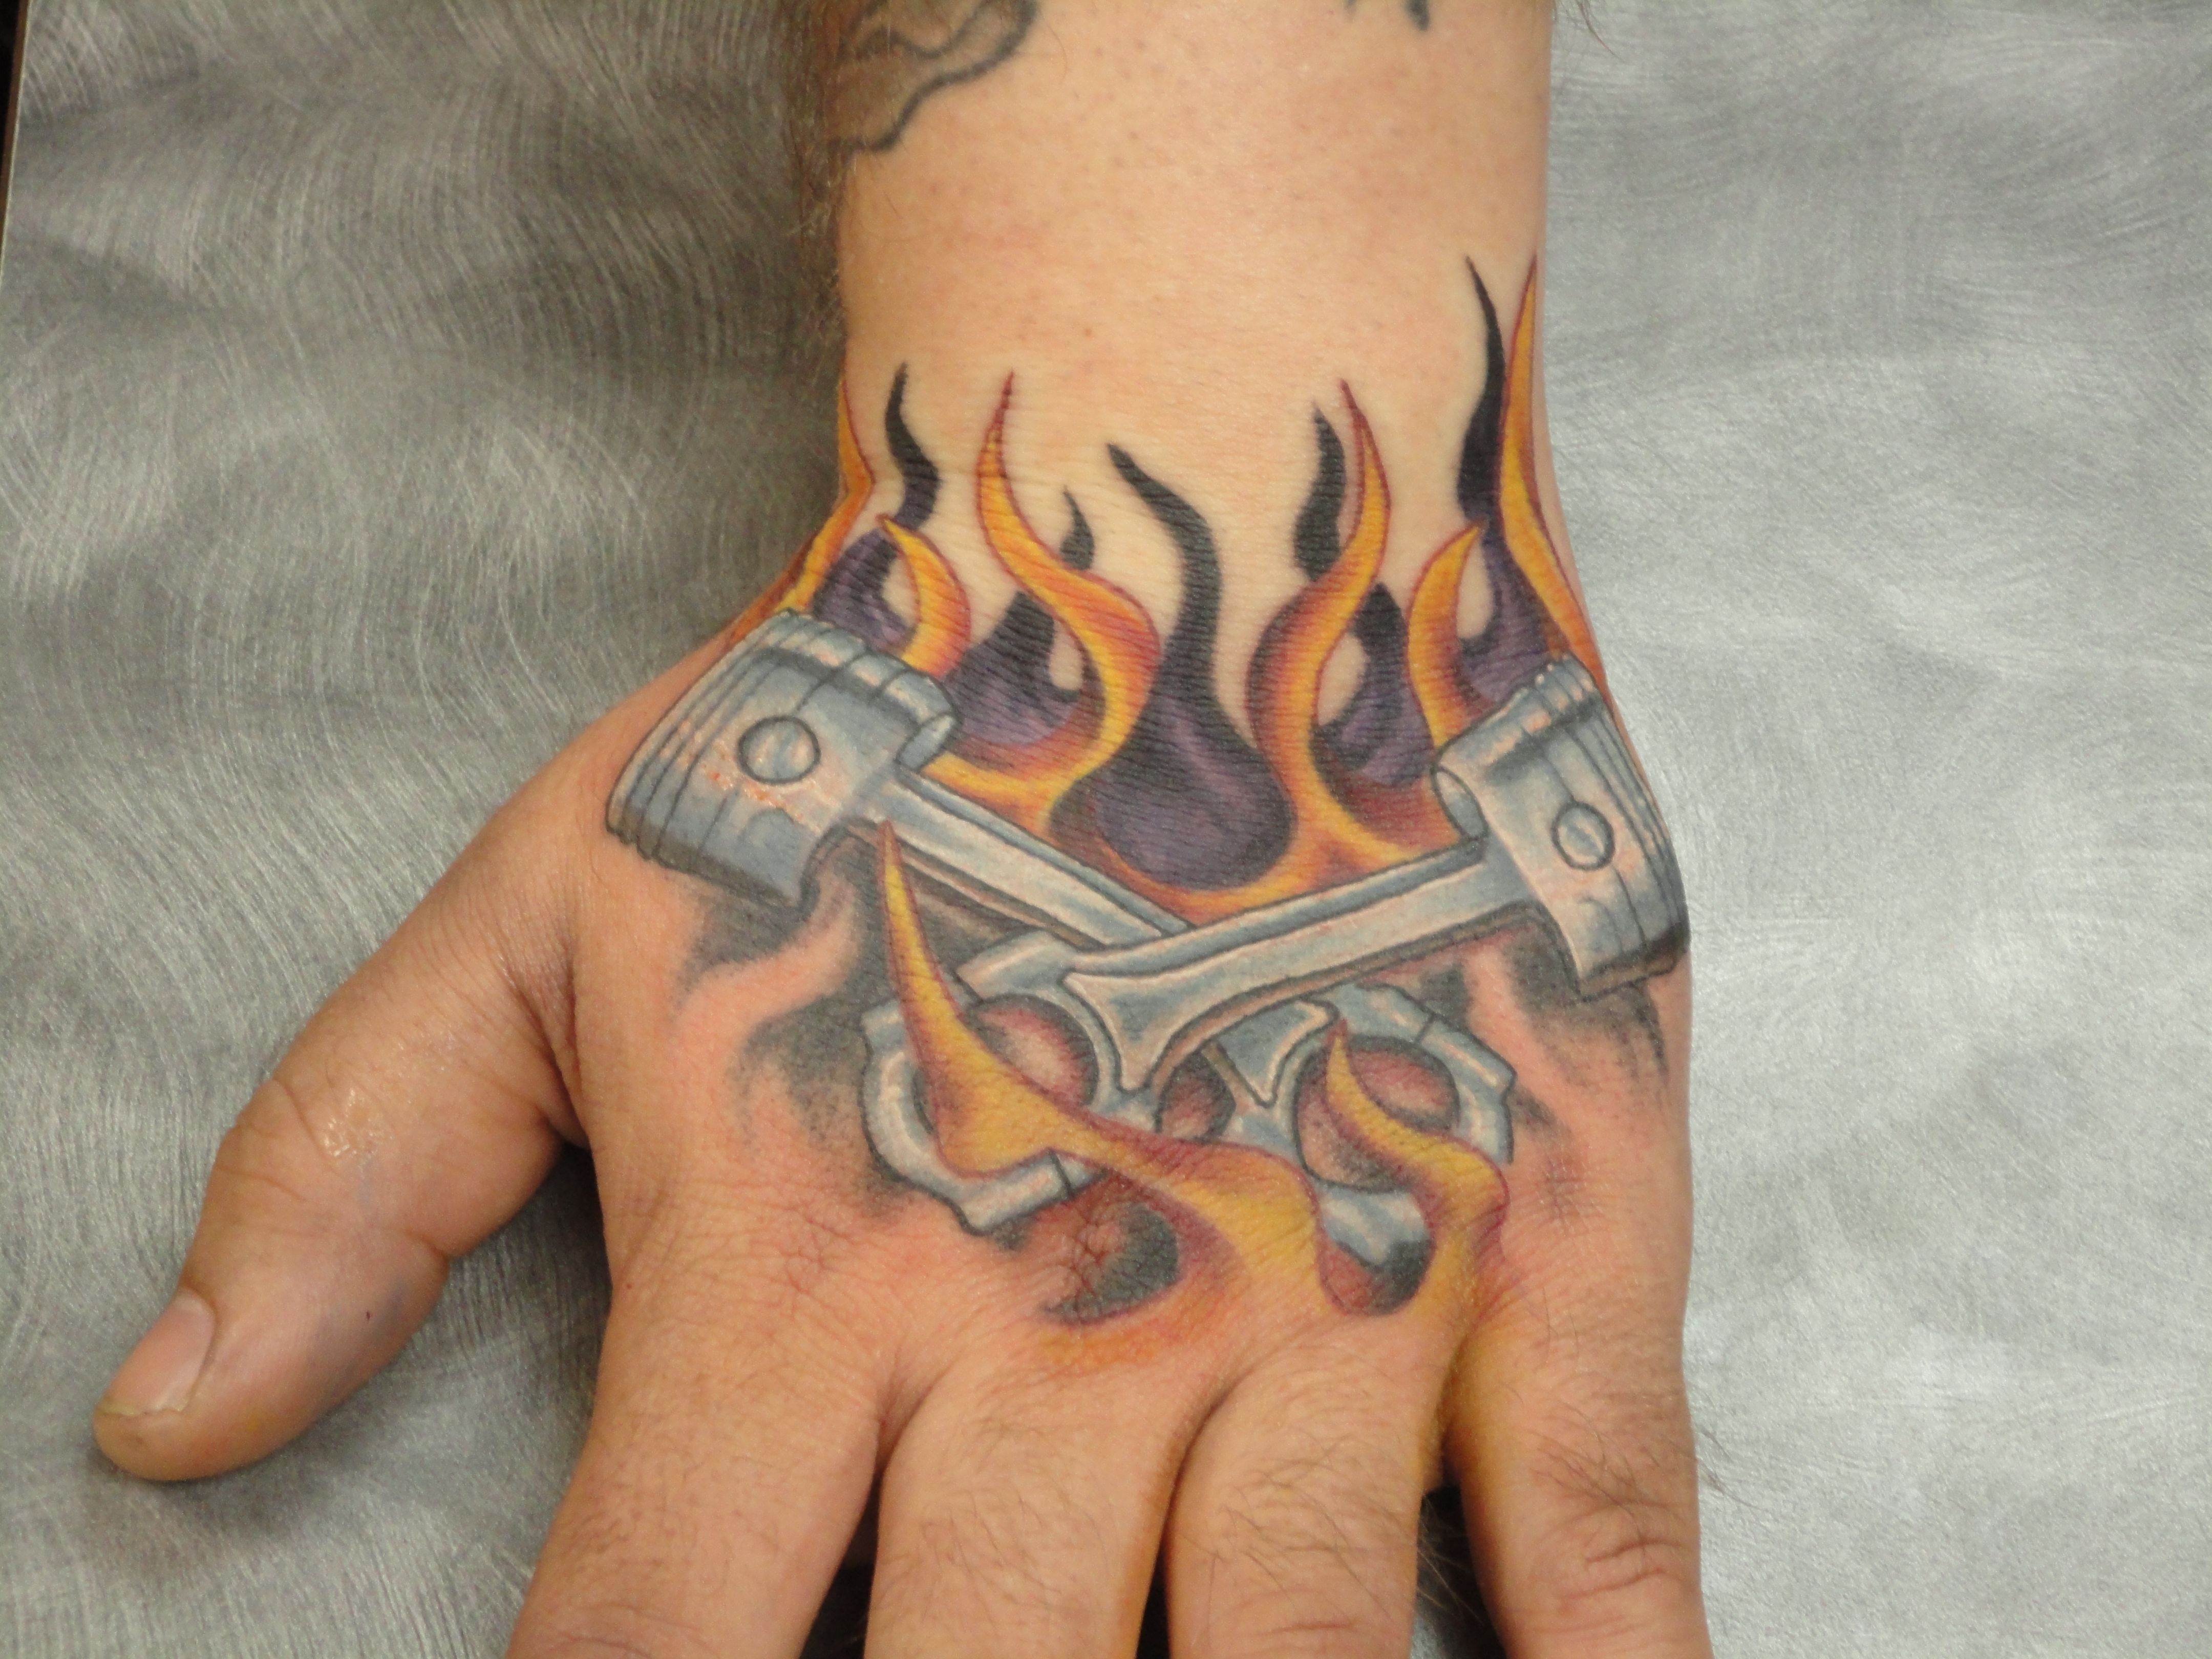 hand tattoo pistons and flames aron taylor tattoos pinterest tattoo piston tattoo and tatoo. Black Bedroom Furniture Sets. Home Design Ideas